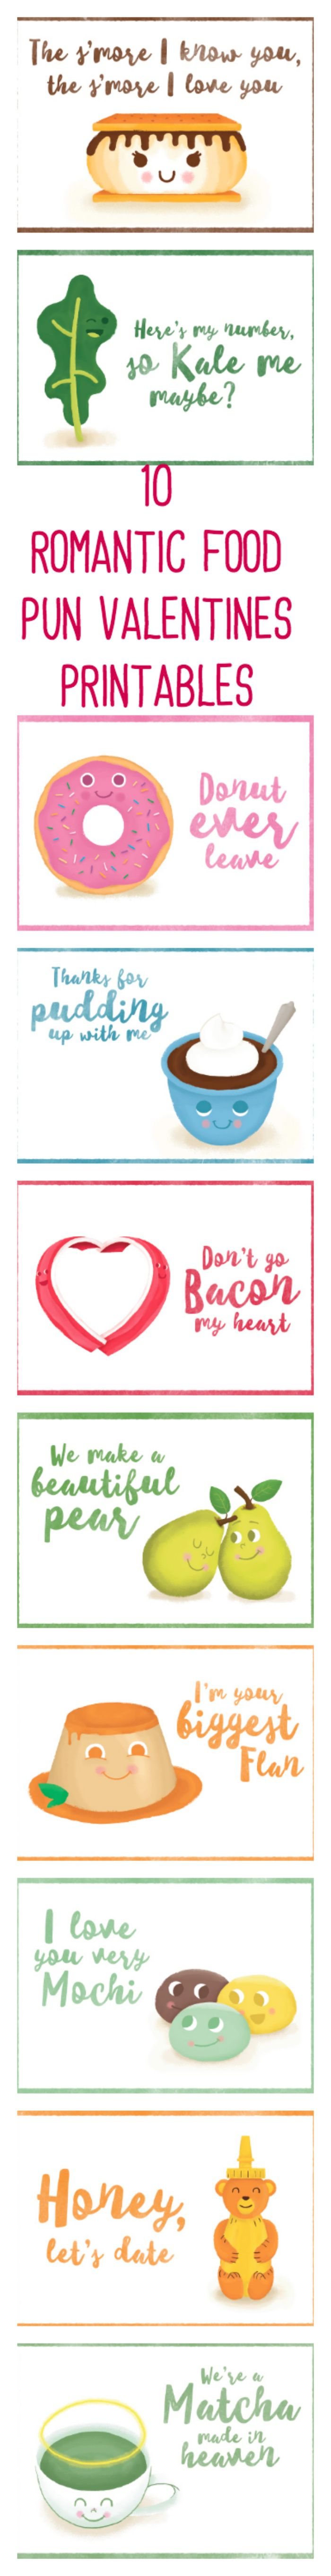 10 Romantic Food Pun Valentines Printables